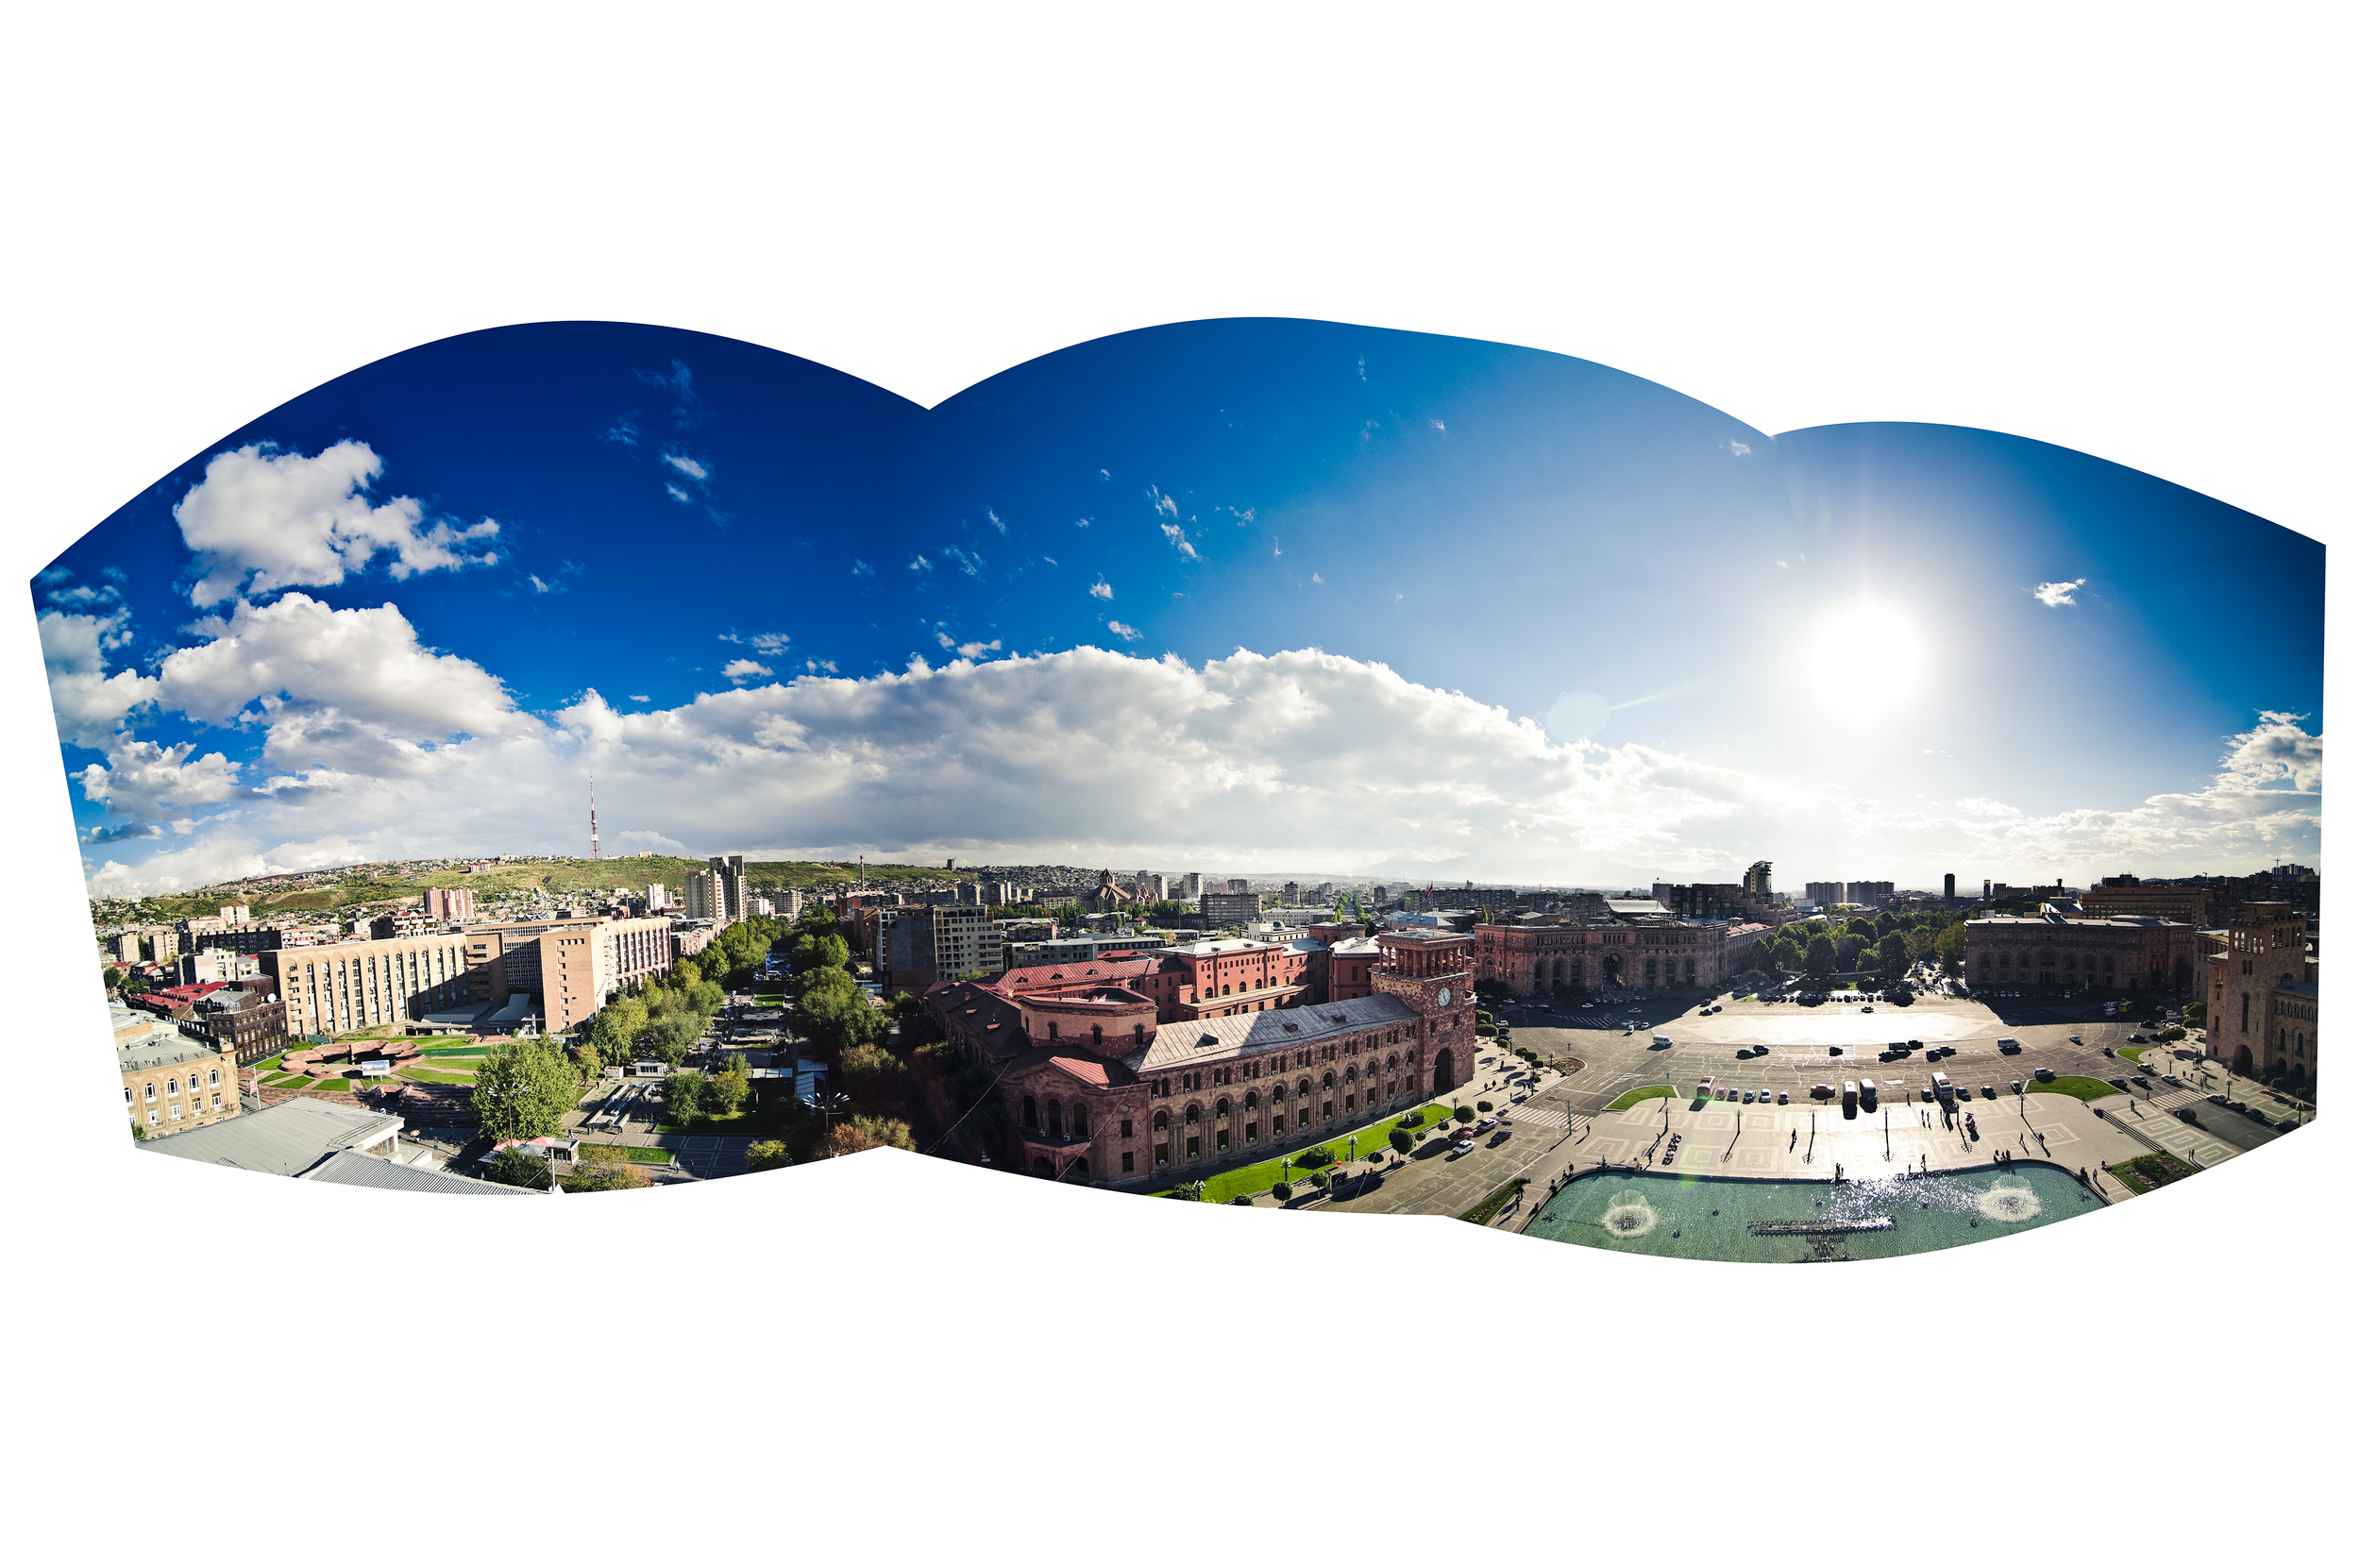 The view of Republic Square from the roof of the National Gallery of Armenia.